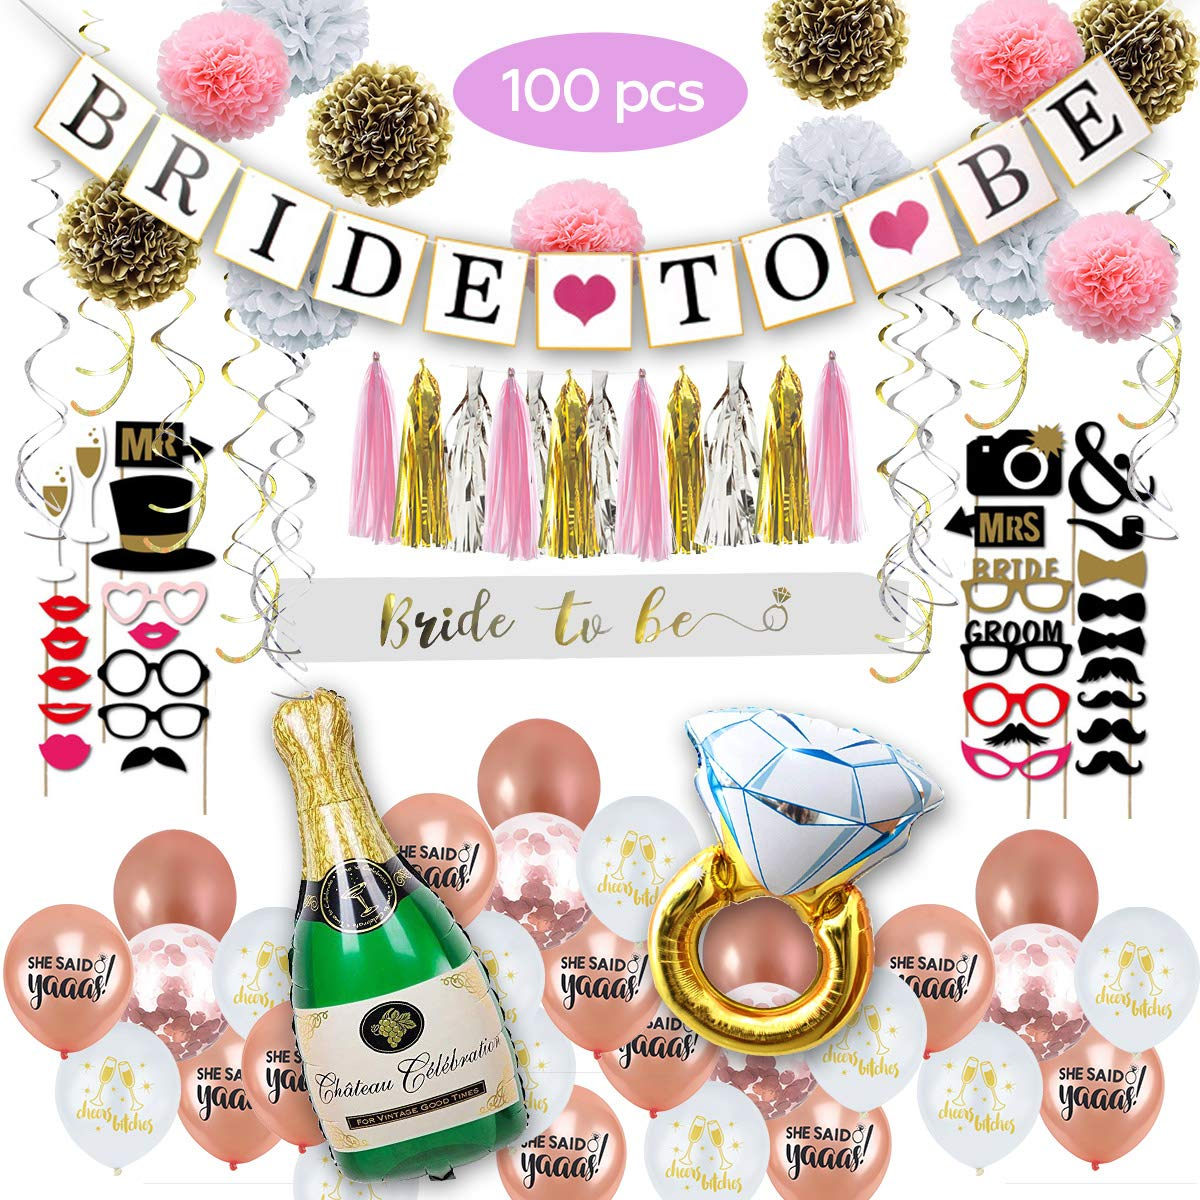 BB Party Kings 100 Pcs Bachelorette Party Decorations - Bride to Be Party Decorations Kit - Bridal Shower Supplies - Bride to Be Banner & Sash, Diamond Ring Balloon, 30 Funny Photos Props, More